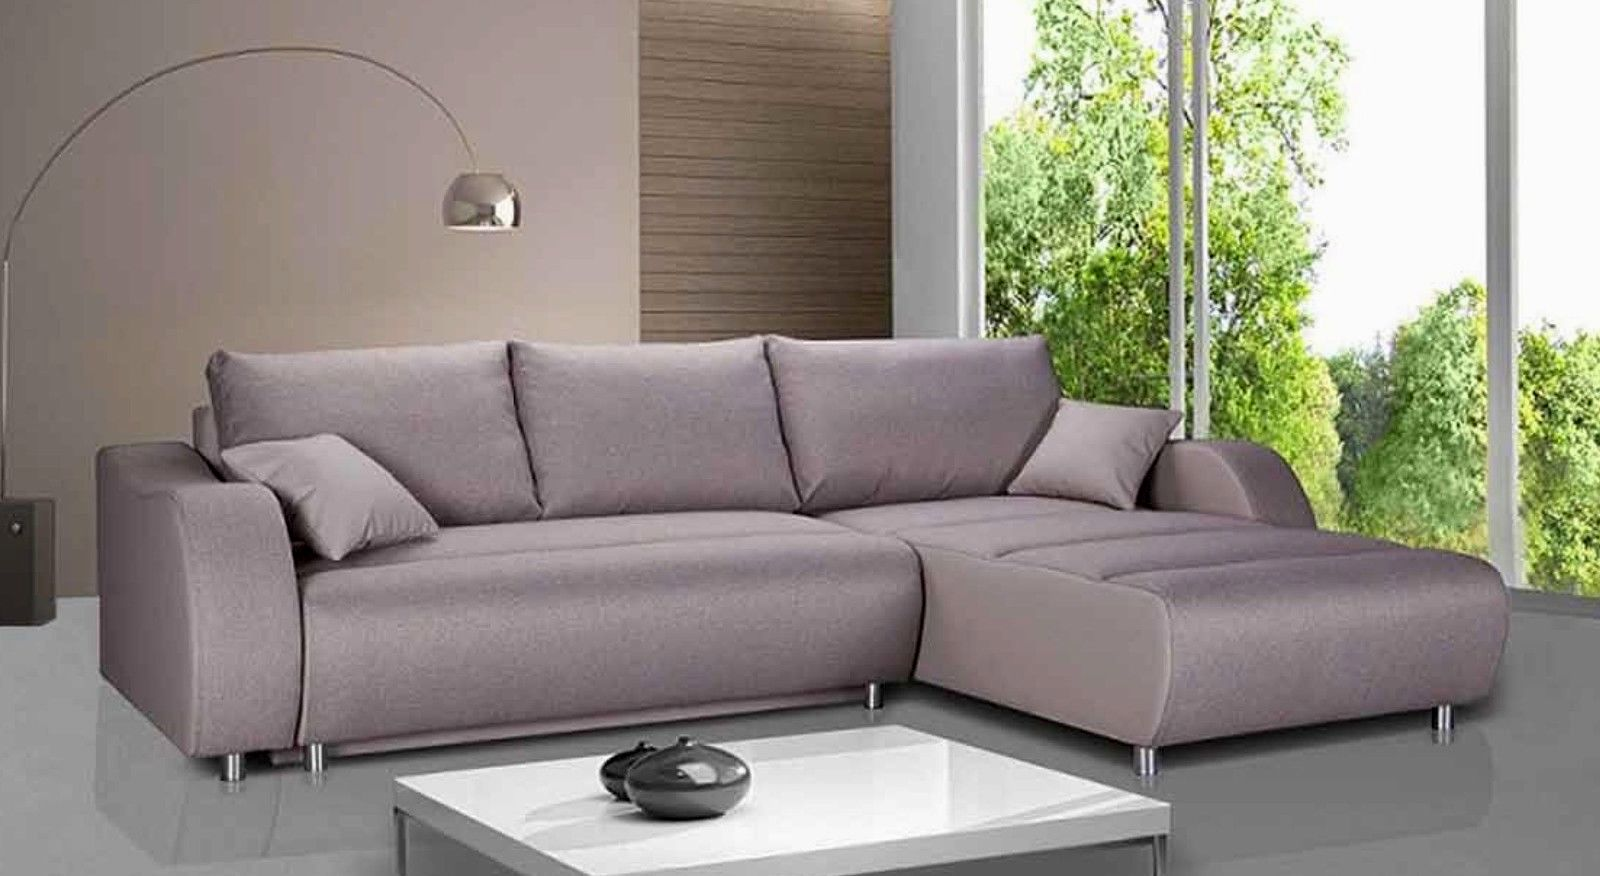 inspirational sofa beds on sale design-Amazing sofa Beds On Sale Gallery